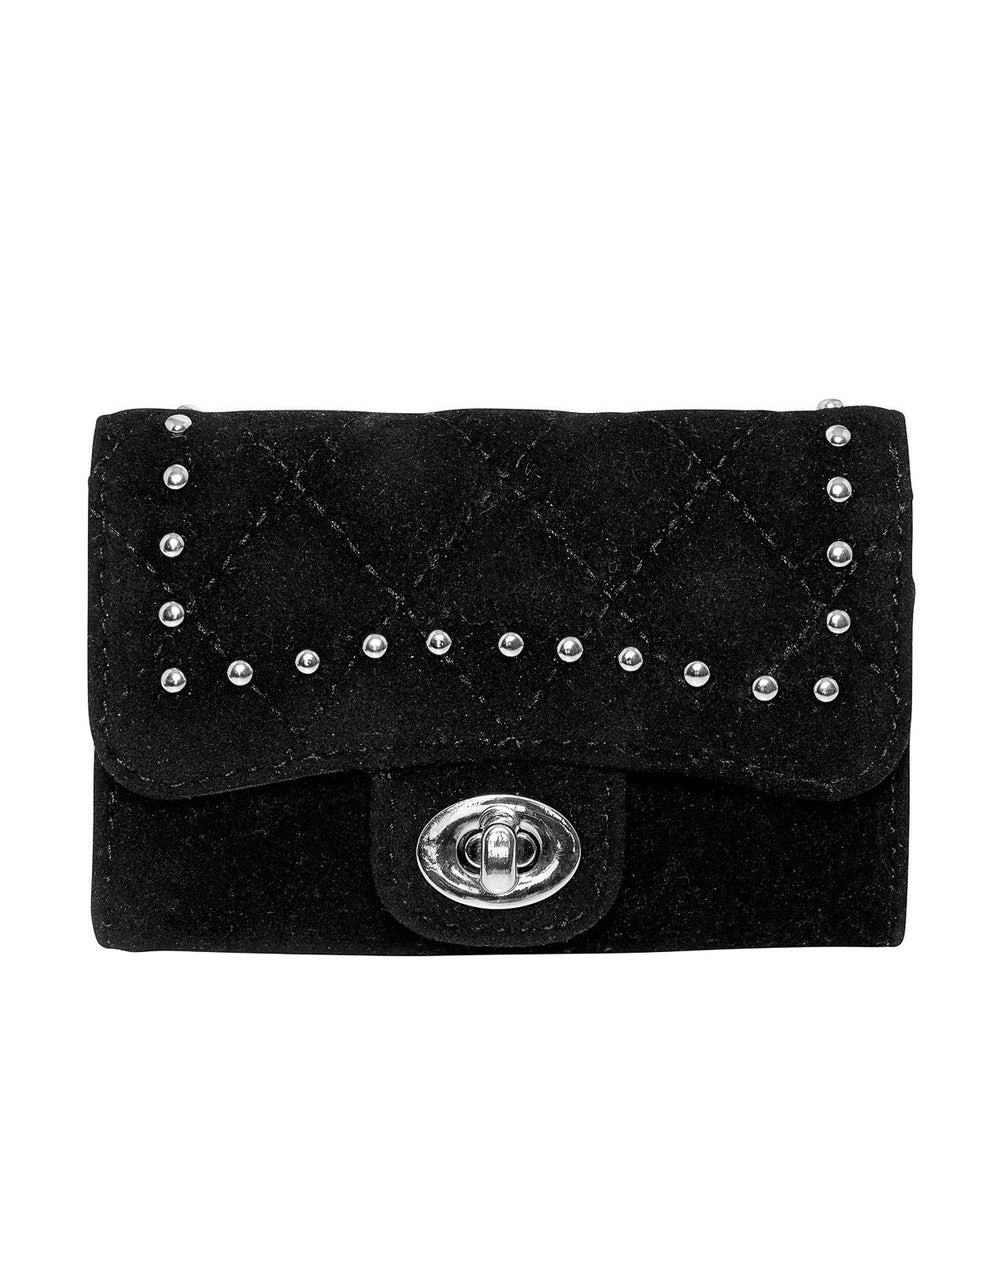 Noella Wallet black quilted studs - Online-Mode